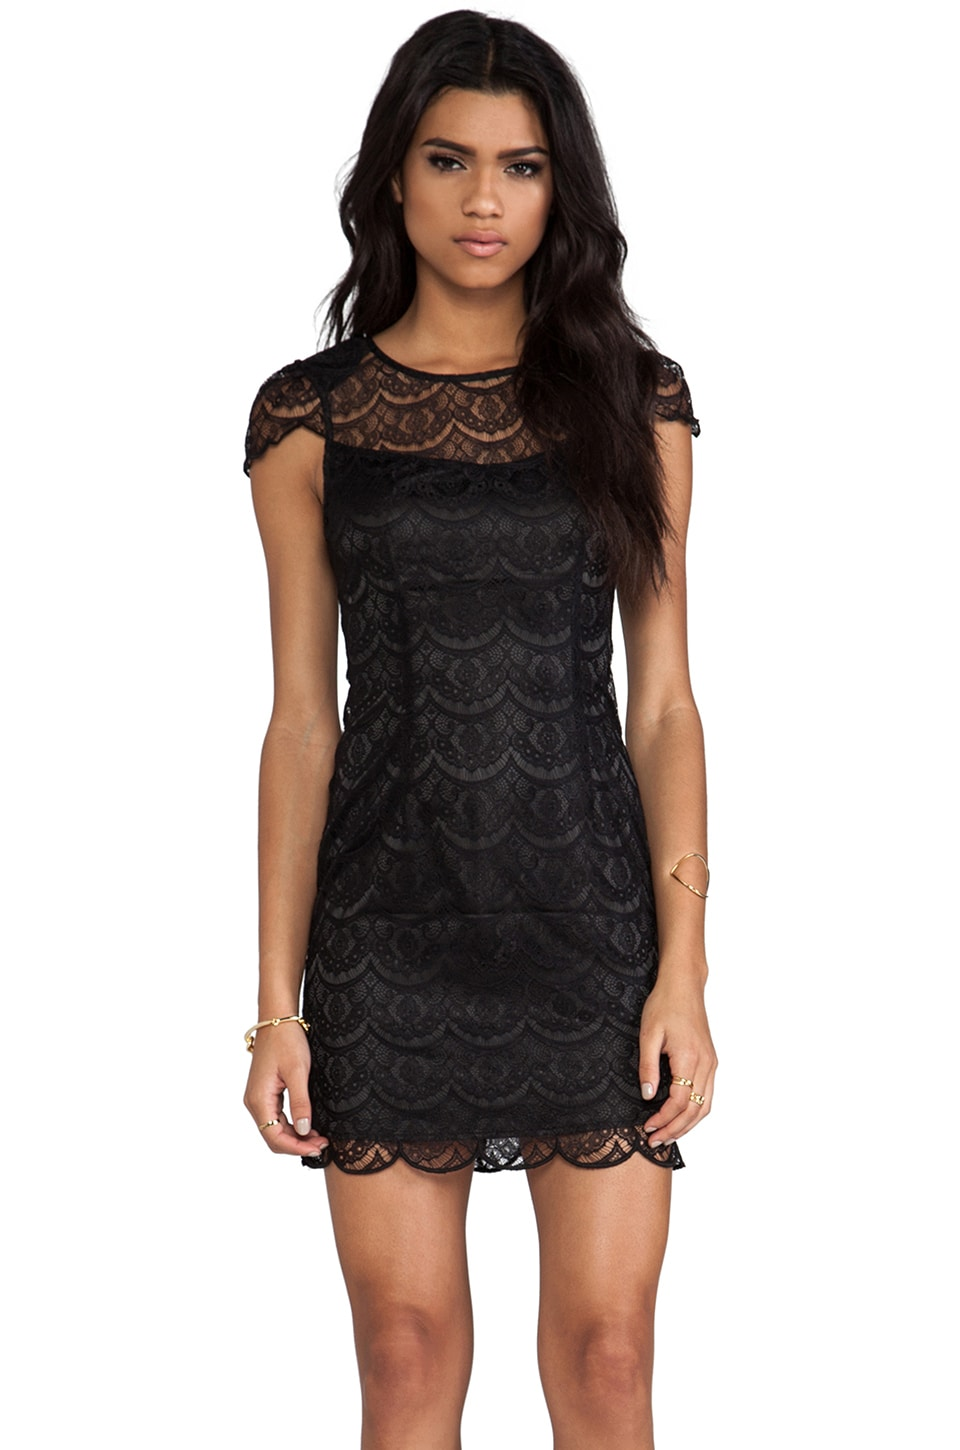 Ladakh Nouveau Lace Dress in Black